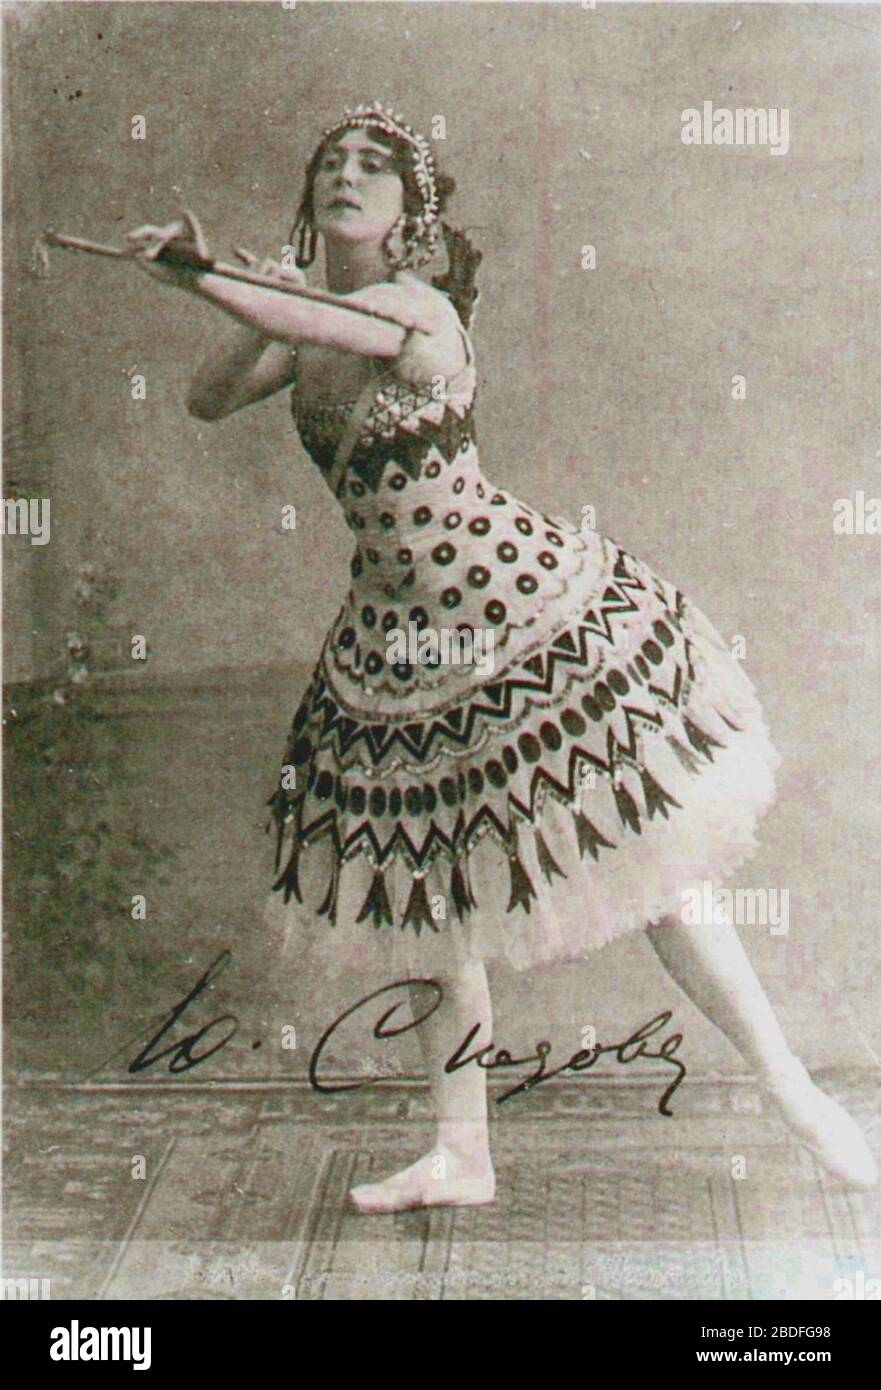 """""""Photo of the ballerina Julia Nikolaevna Sedova (1880-1969) costumed for the role of the Princess Aspicia in the choreographer Marius Petipa (1811-1910) and composer Cesare Pugni's (1802-1870) 1862 ballet The Pharaoh's Daughter.; circa 1905 date QS:P,+1905-00-00T00:00:00Z/9,P1480,Q5727902; Photo scanned from the 2nd edition of the book Ballet: An Illustrated History by Mary Clarke and Clement Crisp. Penguin Group, 1992.; Unknown photographer of the photography department of the Imperial Mariinsky Theatre. St. Petersburg, Russian Empire.; """" Stock Photo"""